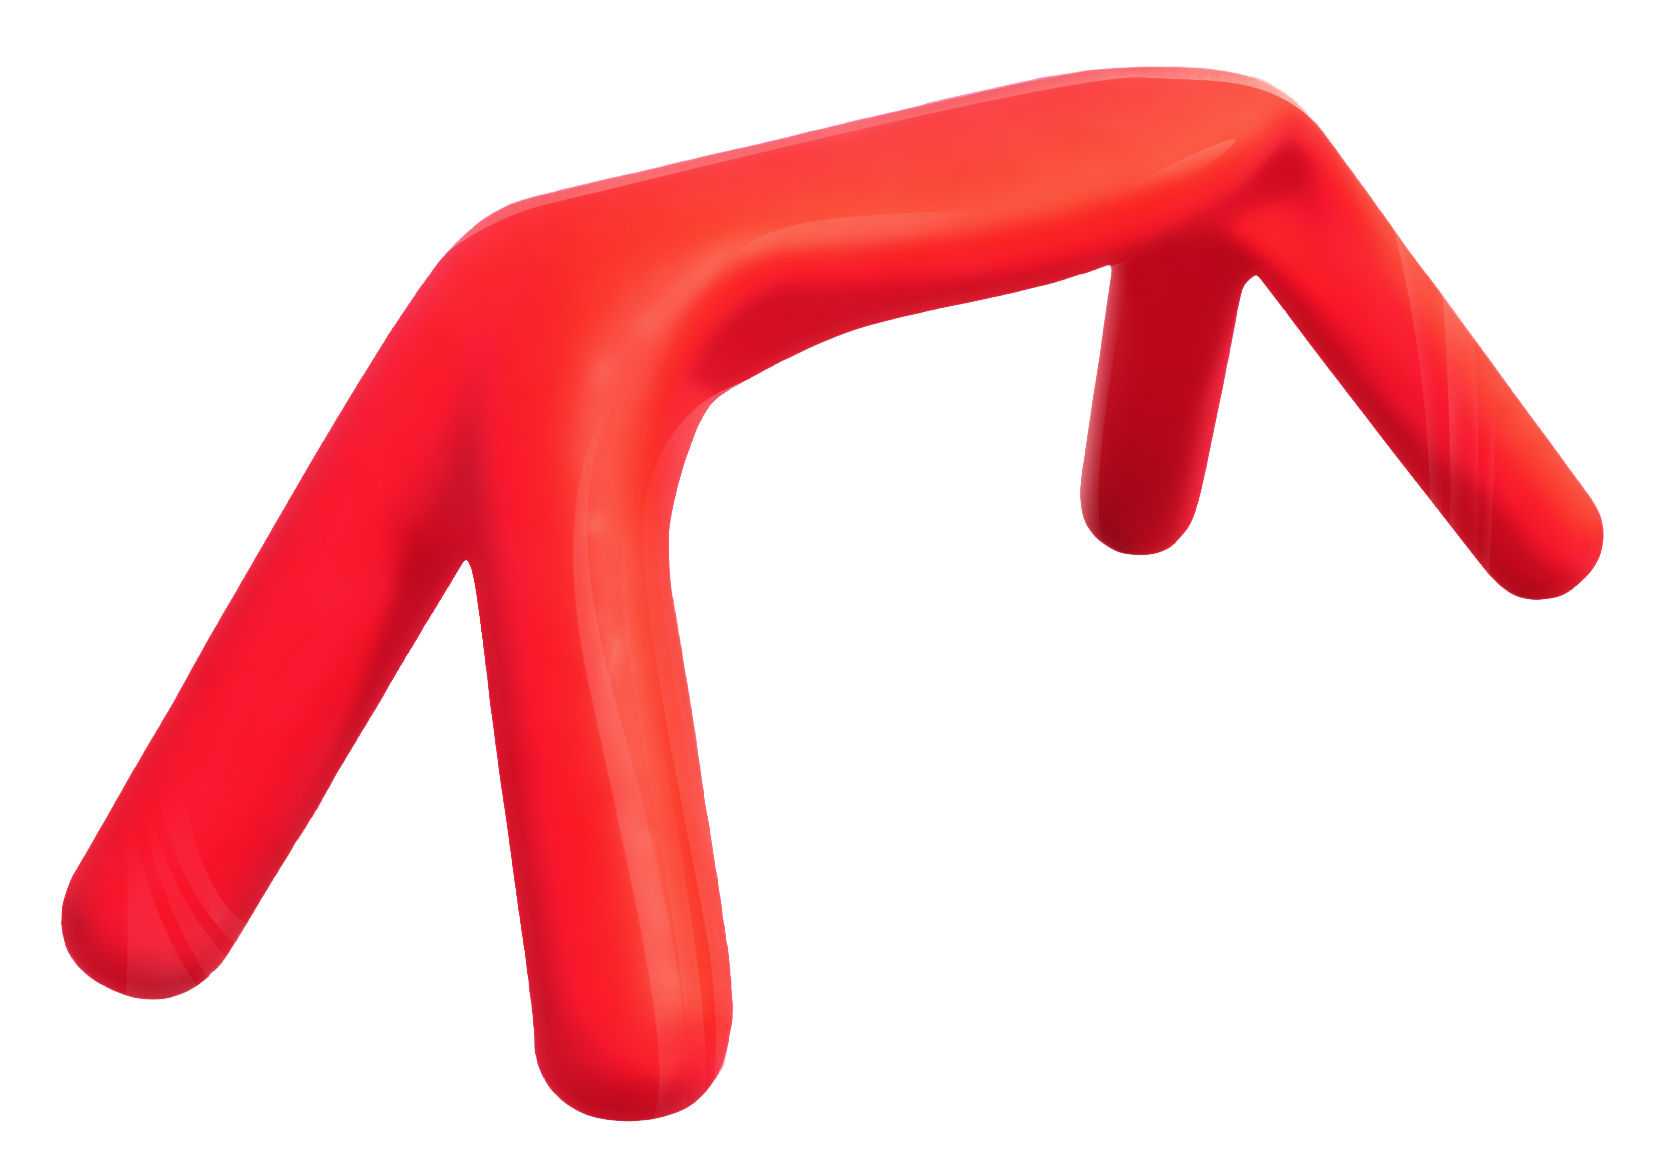 Furniture - Benches - Atlas Bench - Lacquered version by Slide - Lacquered red - Lacquered polythene